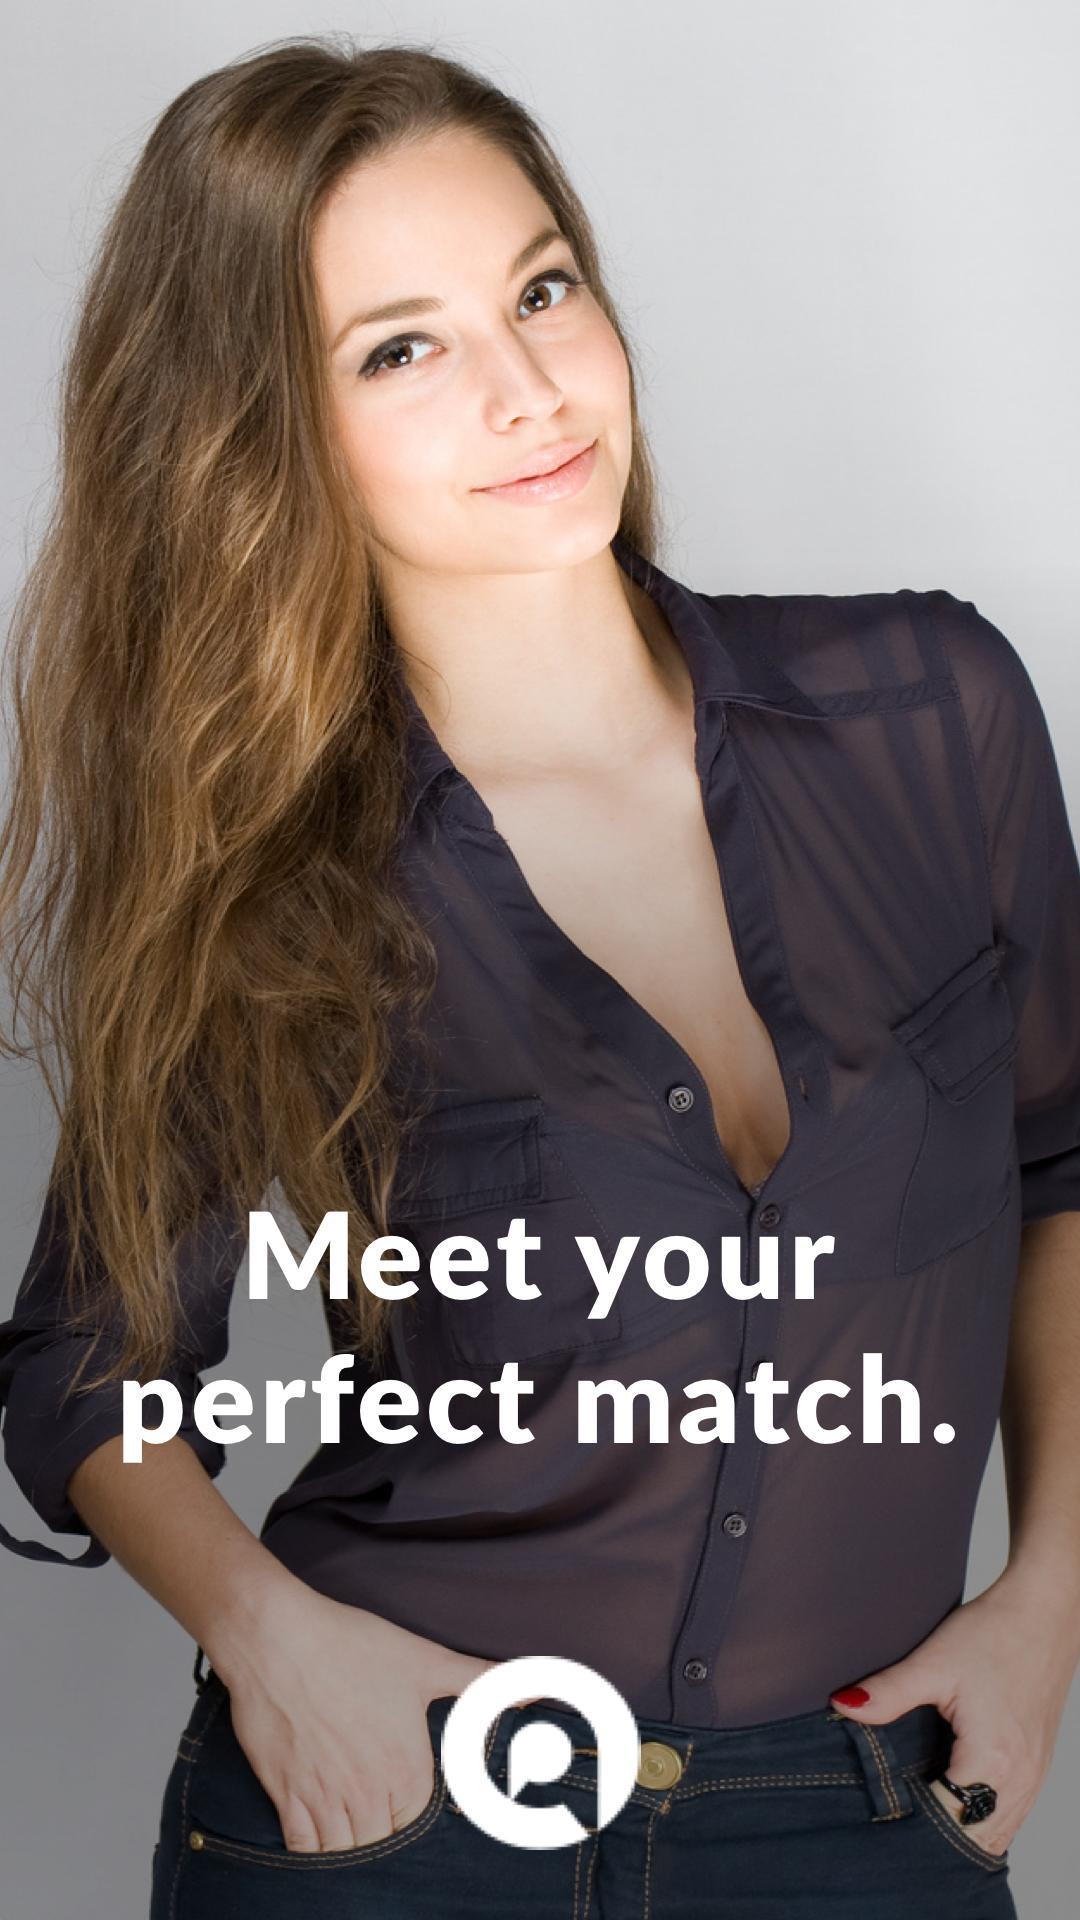 Qeep® Dating App for Serious Relationships for Android - APK